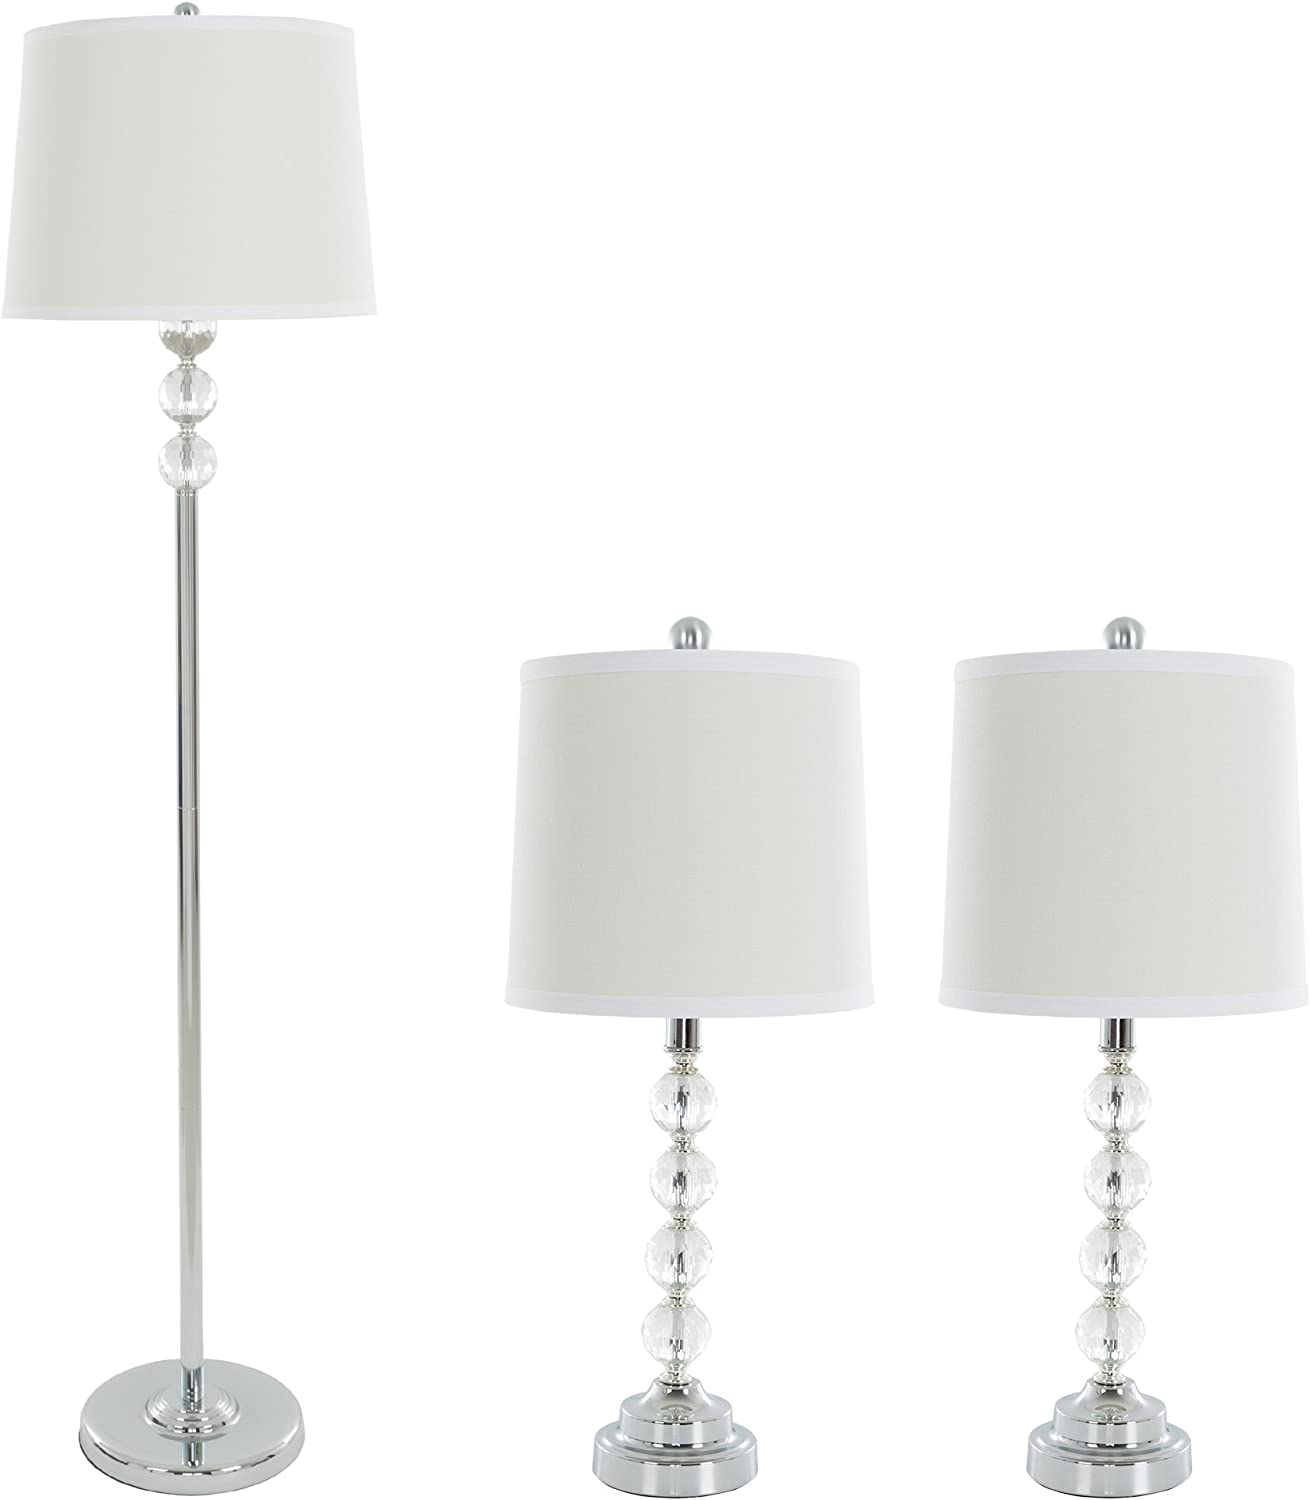 Table Lamps And Floor Lamp Set Of 3 Faceted Crystal Balls 3 Led Bulbs Included By Lavish Home Table Lamps Amazon Canada